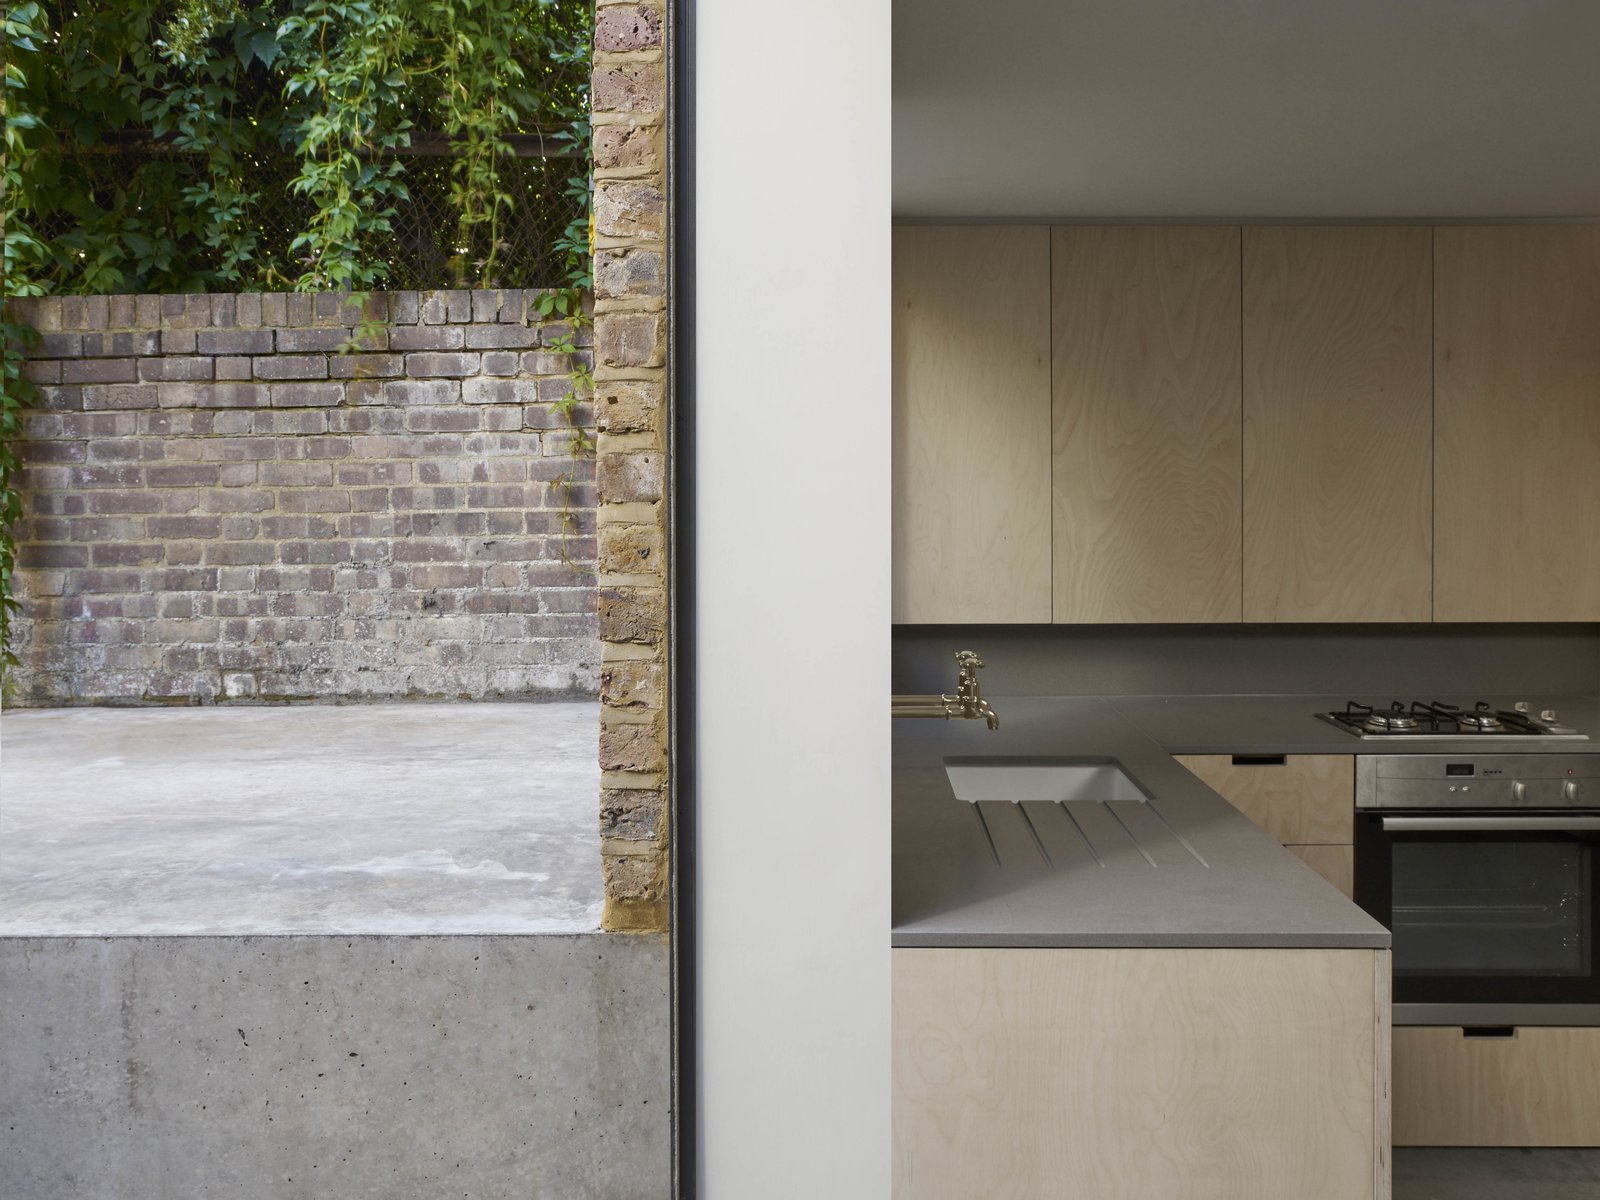 Kitchen  Photo 4 of 10 in A Once-Derelict London House Restored With Modern Elegance